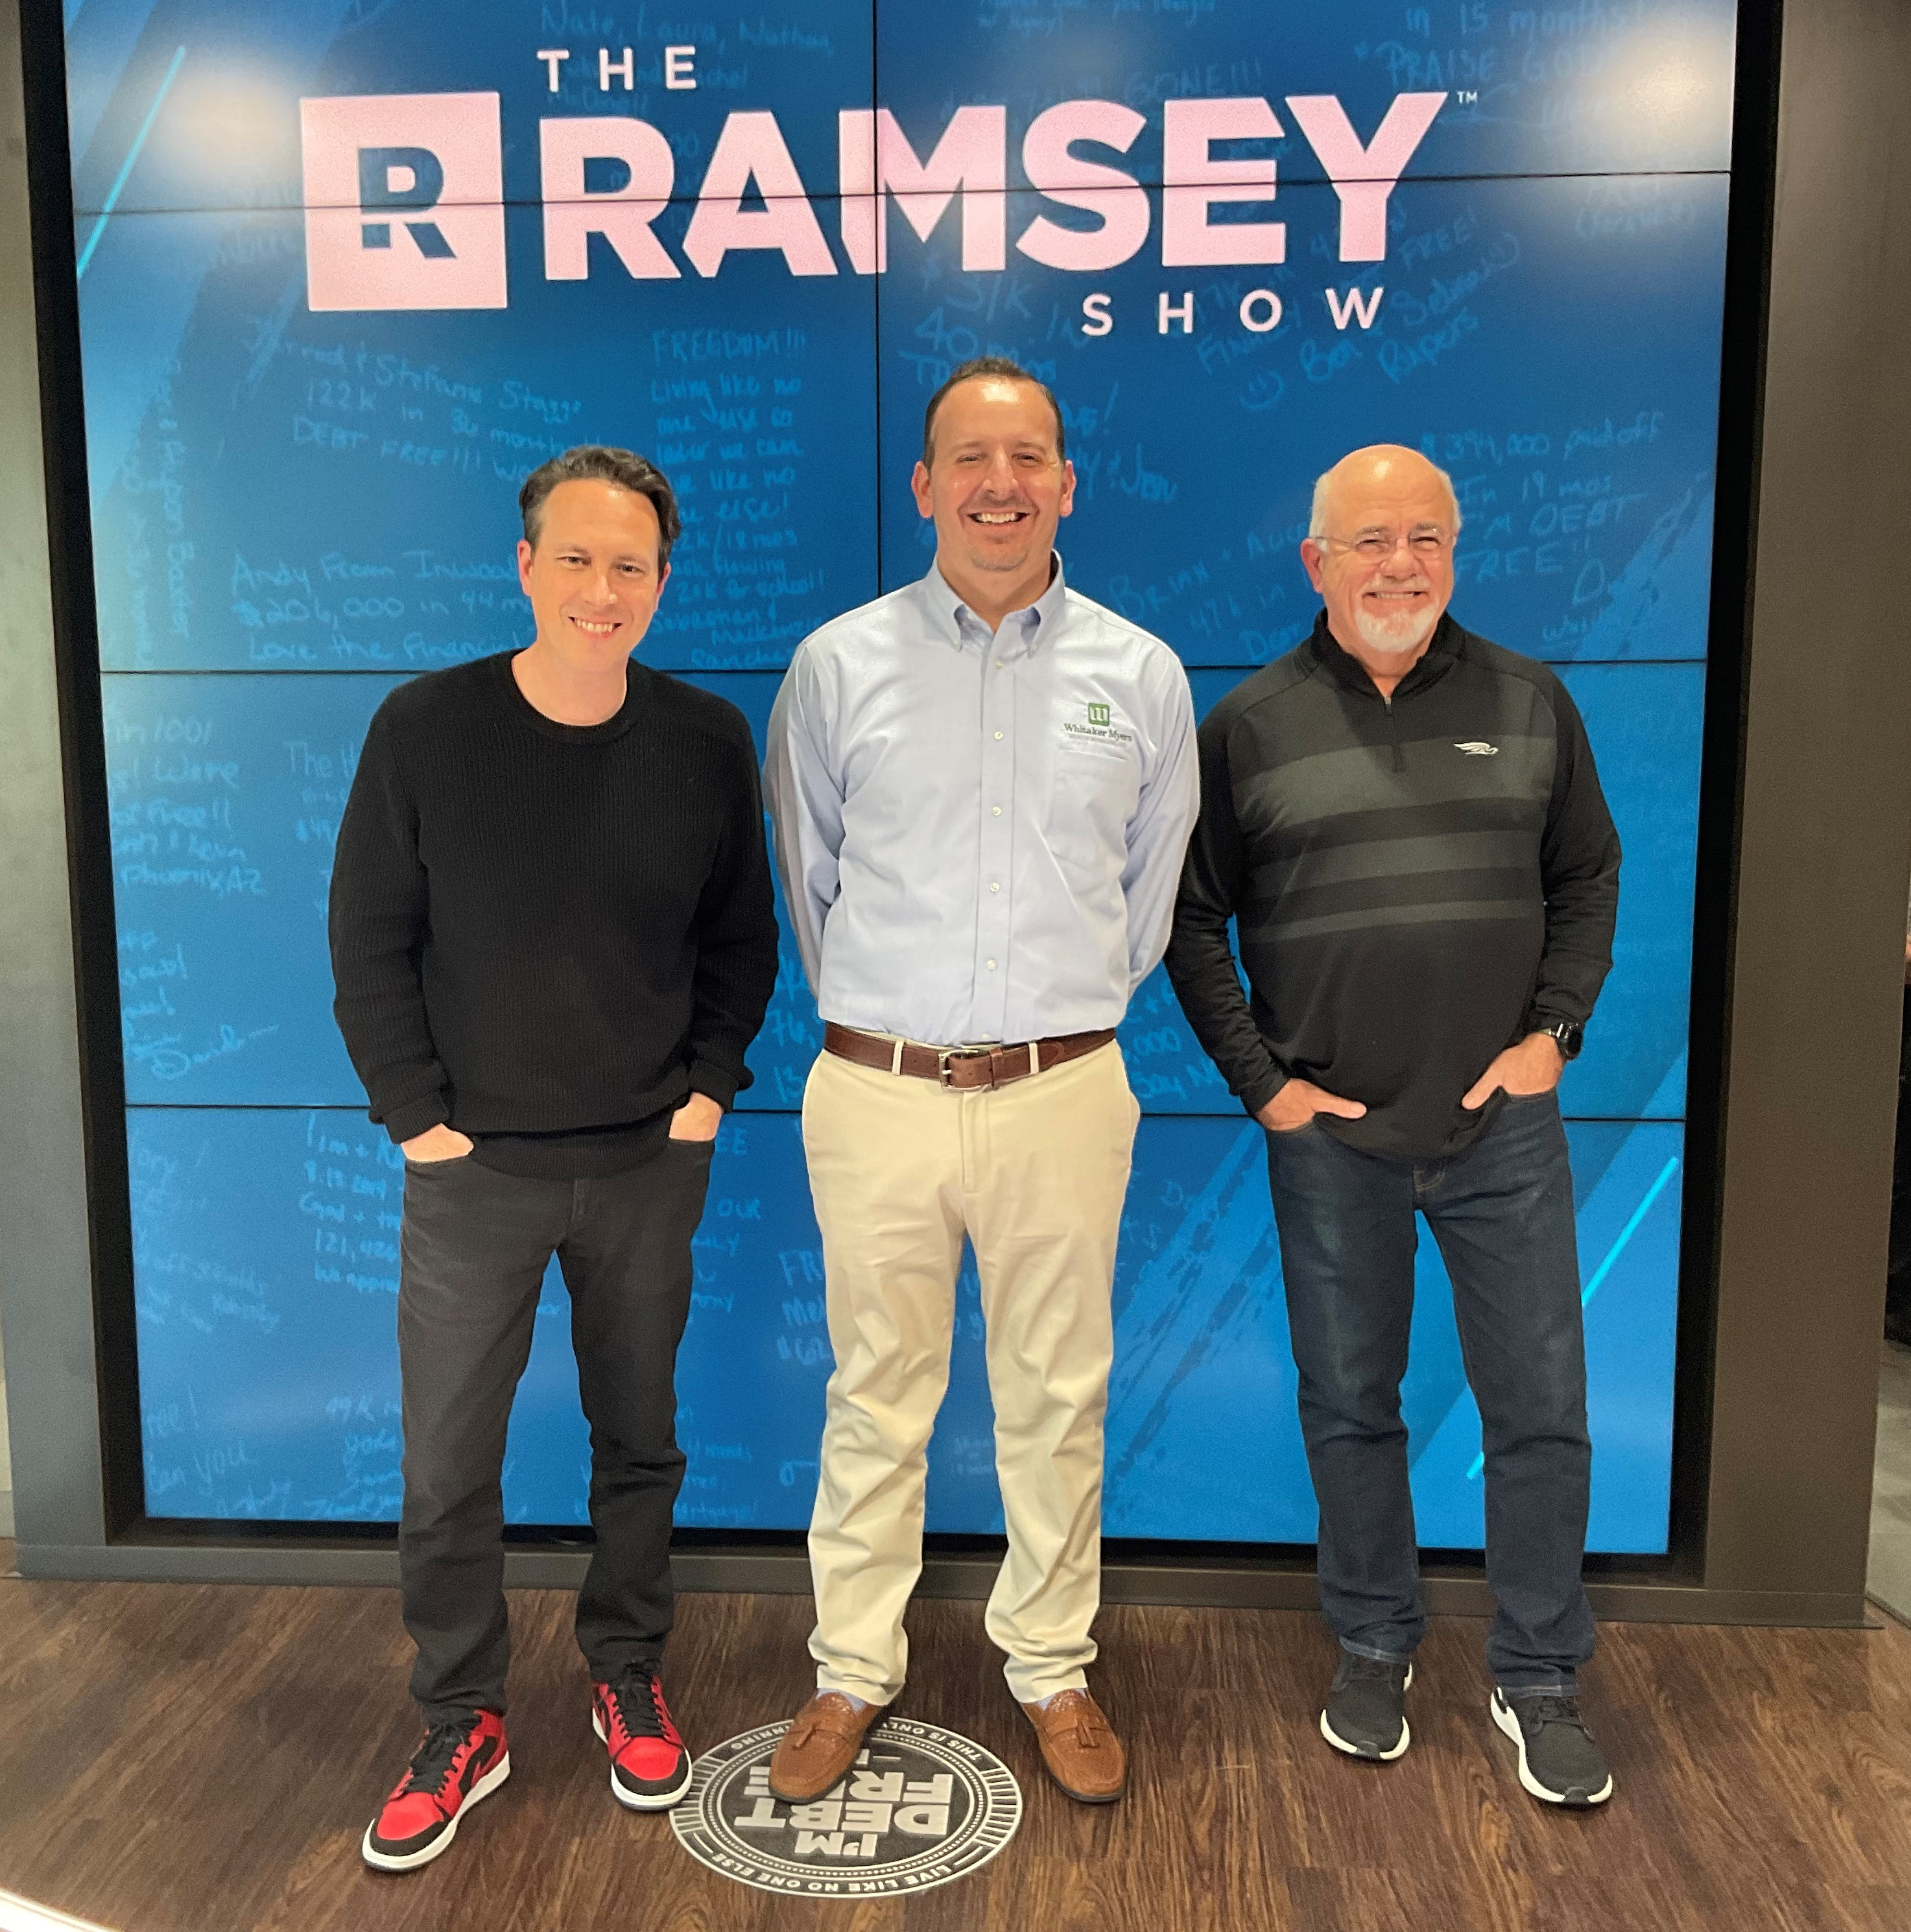 John-mark Young, financial advisor Akron OH